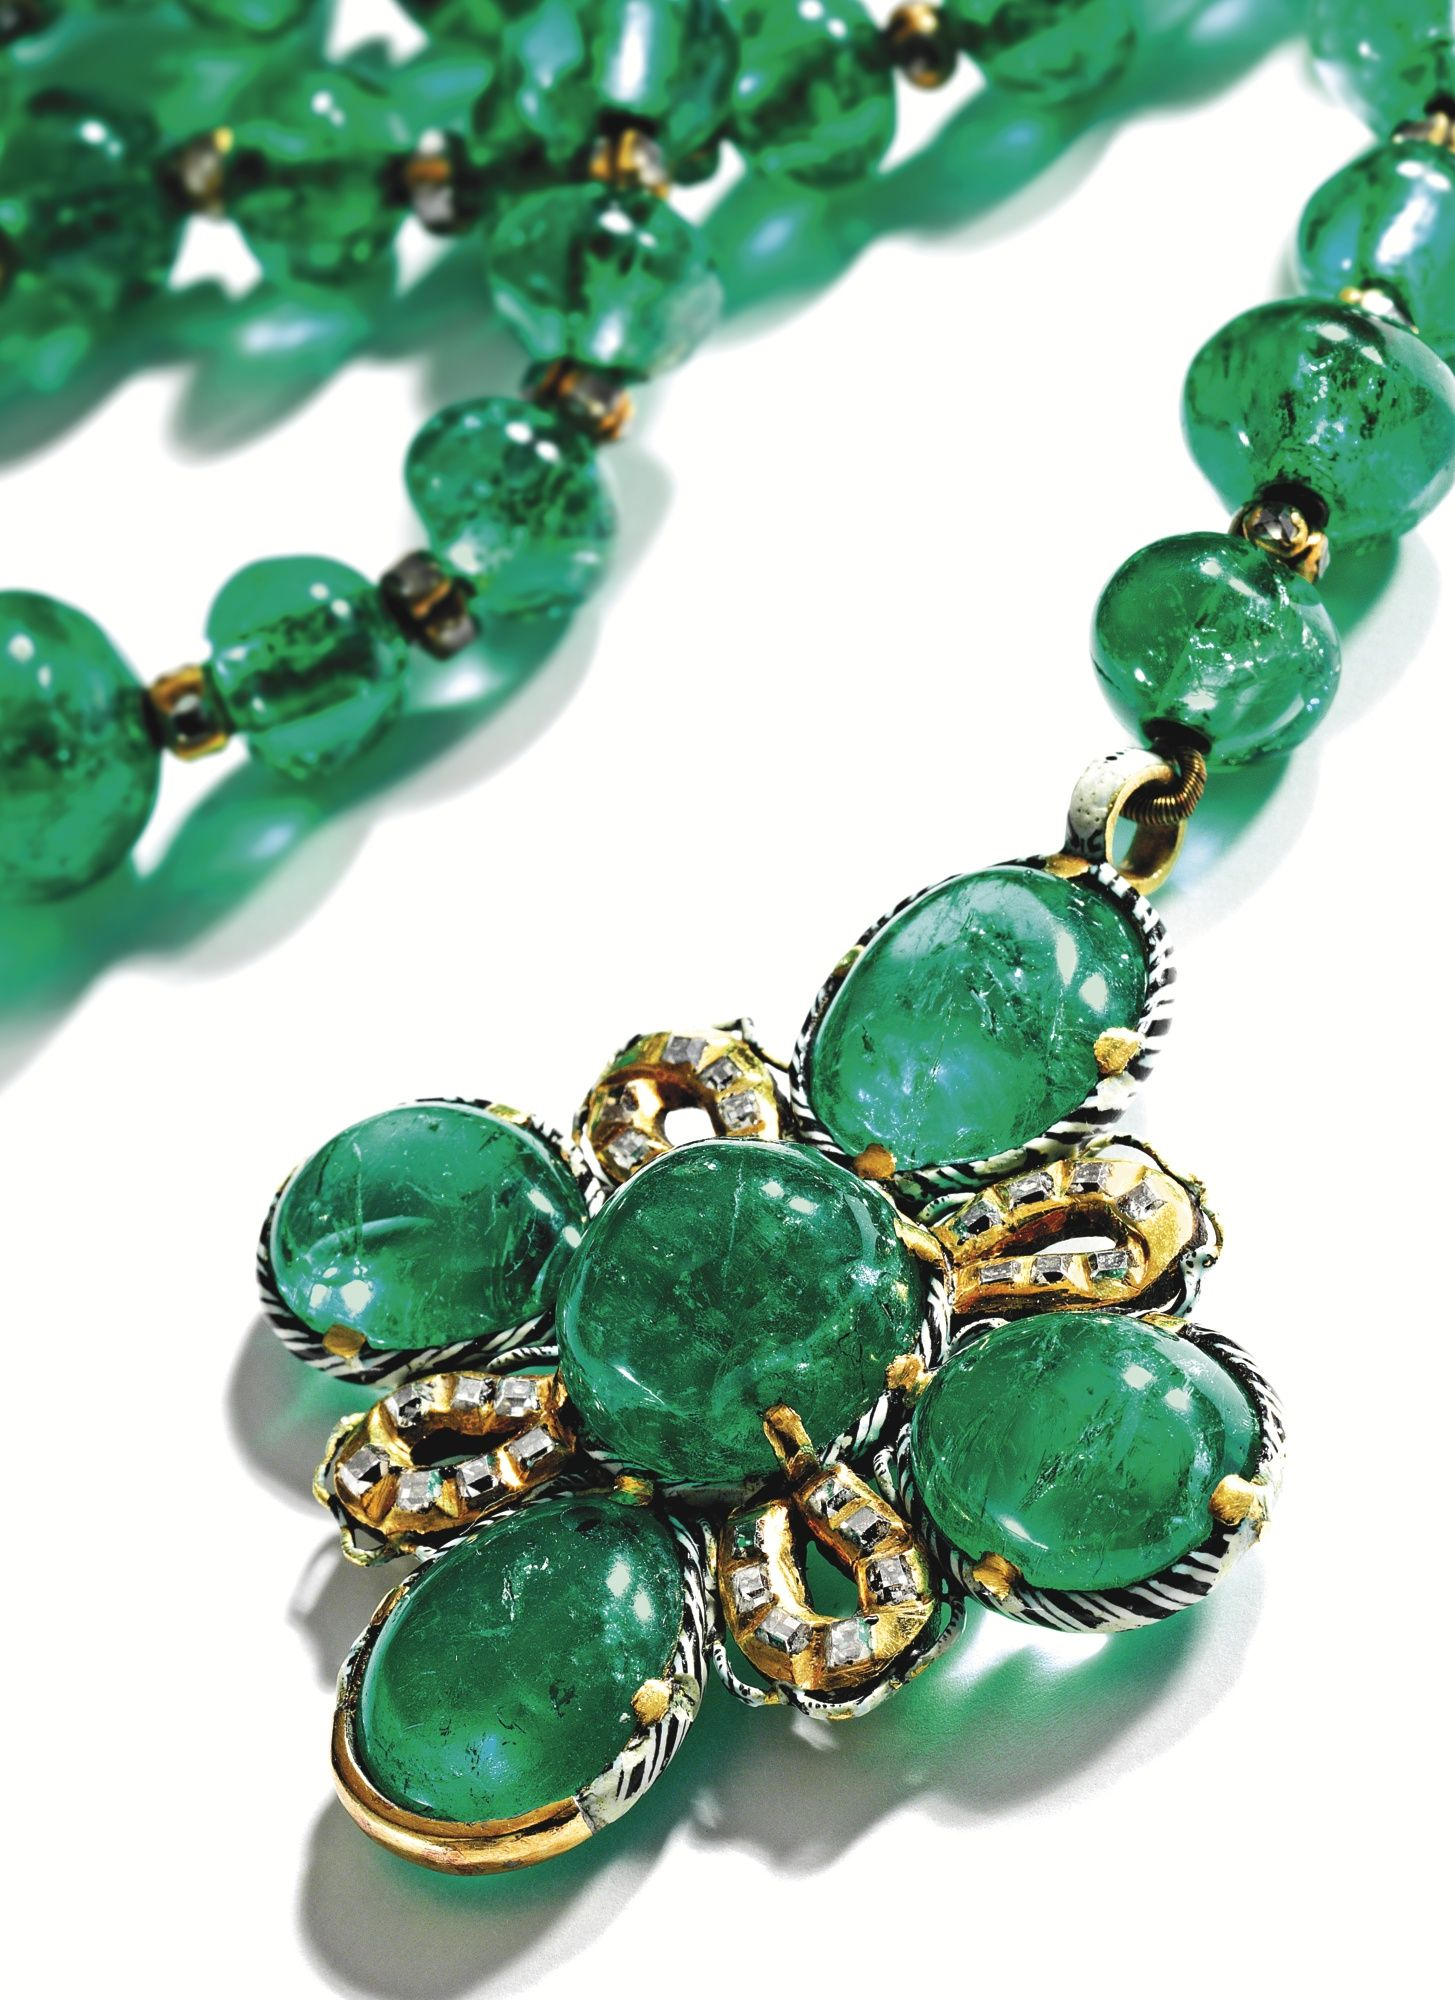 f0095c004 Emerald, Diamond and Enamel Rosary, German, Late 17th Century Composed of  70 emerald beads spaced by gold rondelles set with table-cut diamonds, ...